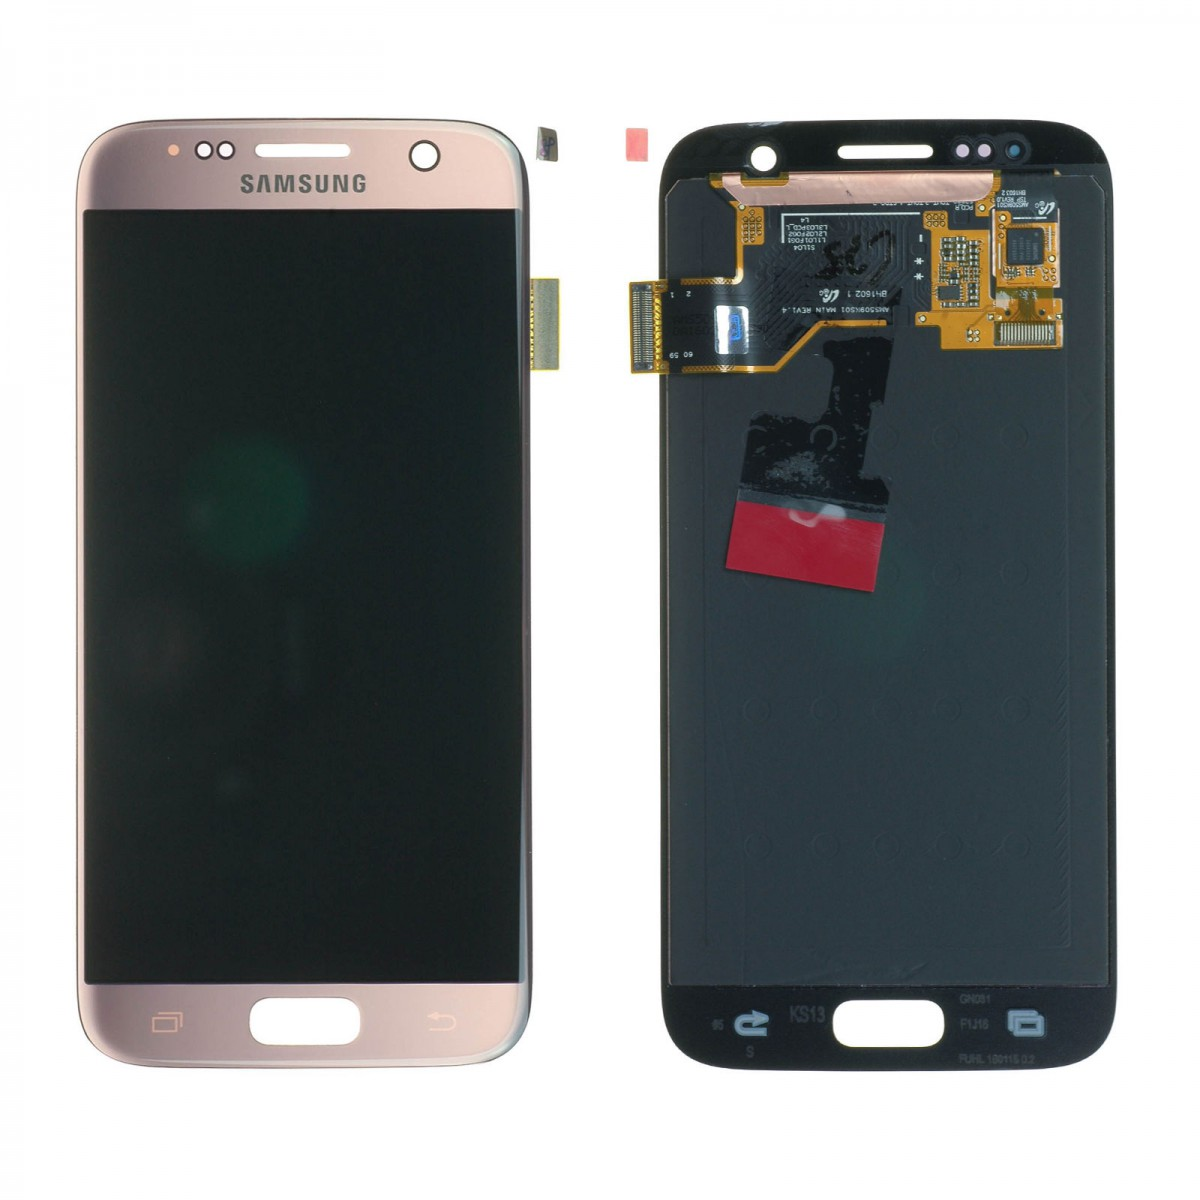 Cran samsung galaxy s7 g930f rose achat en ligne sur for Photo ecran galaxy s7